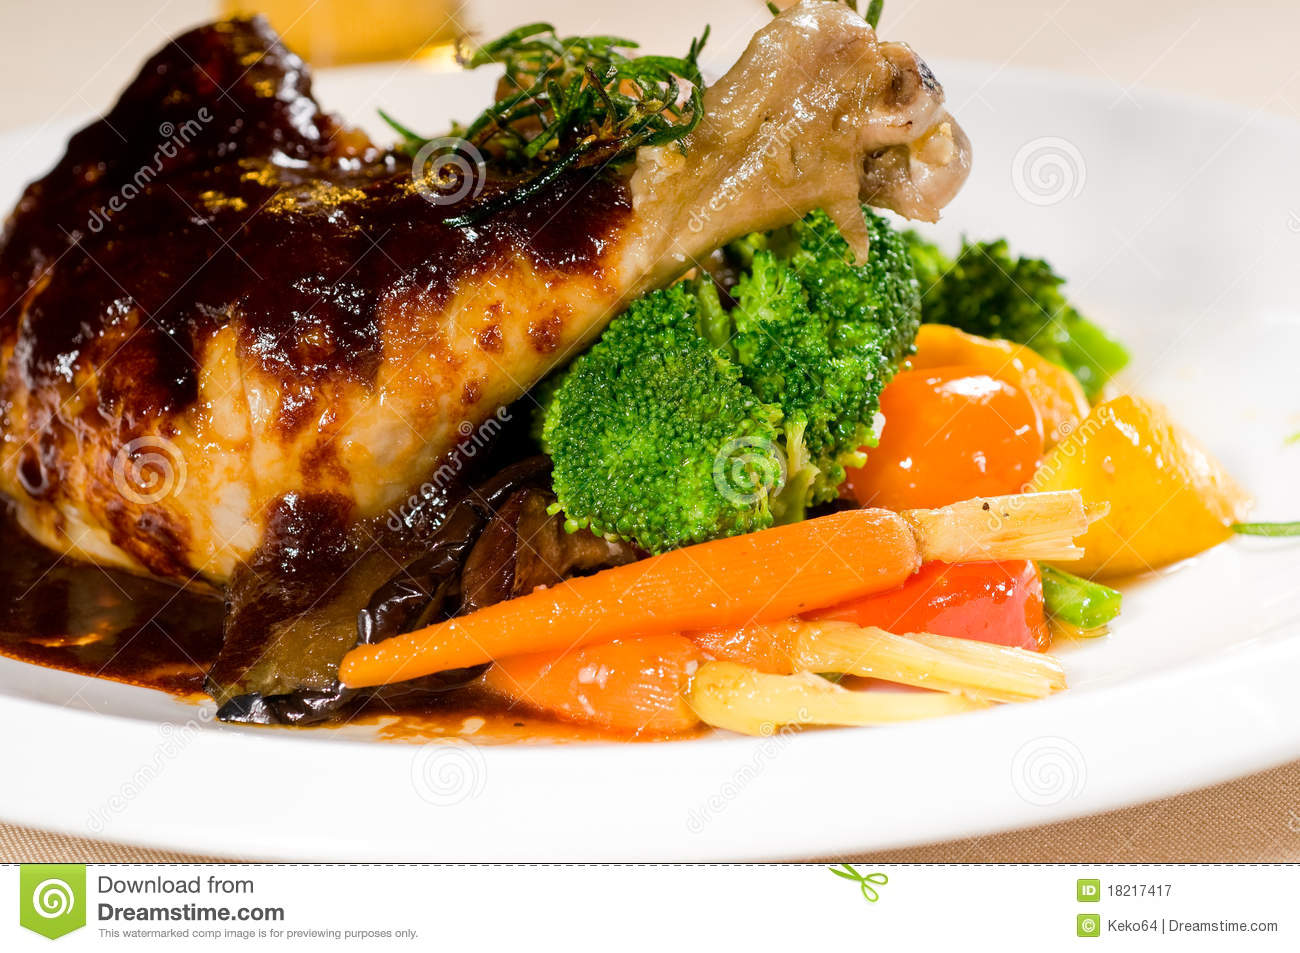 Beer Chicken Stew Royalty Free Stock Photography - Image: 18217417